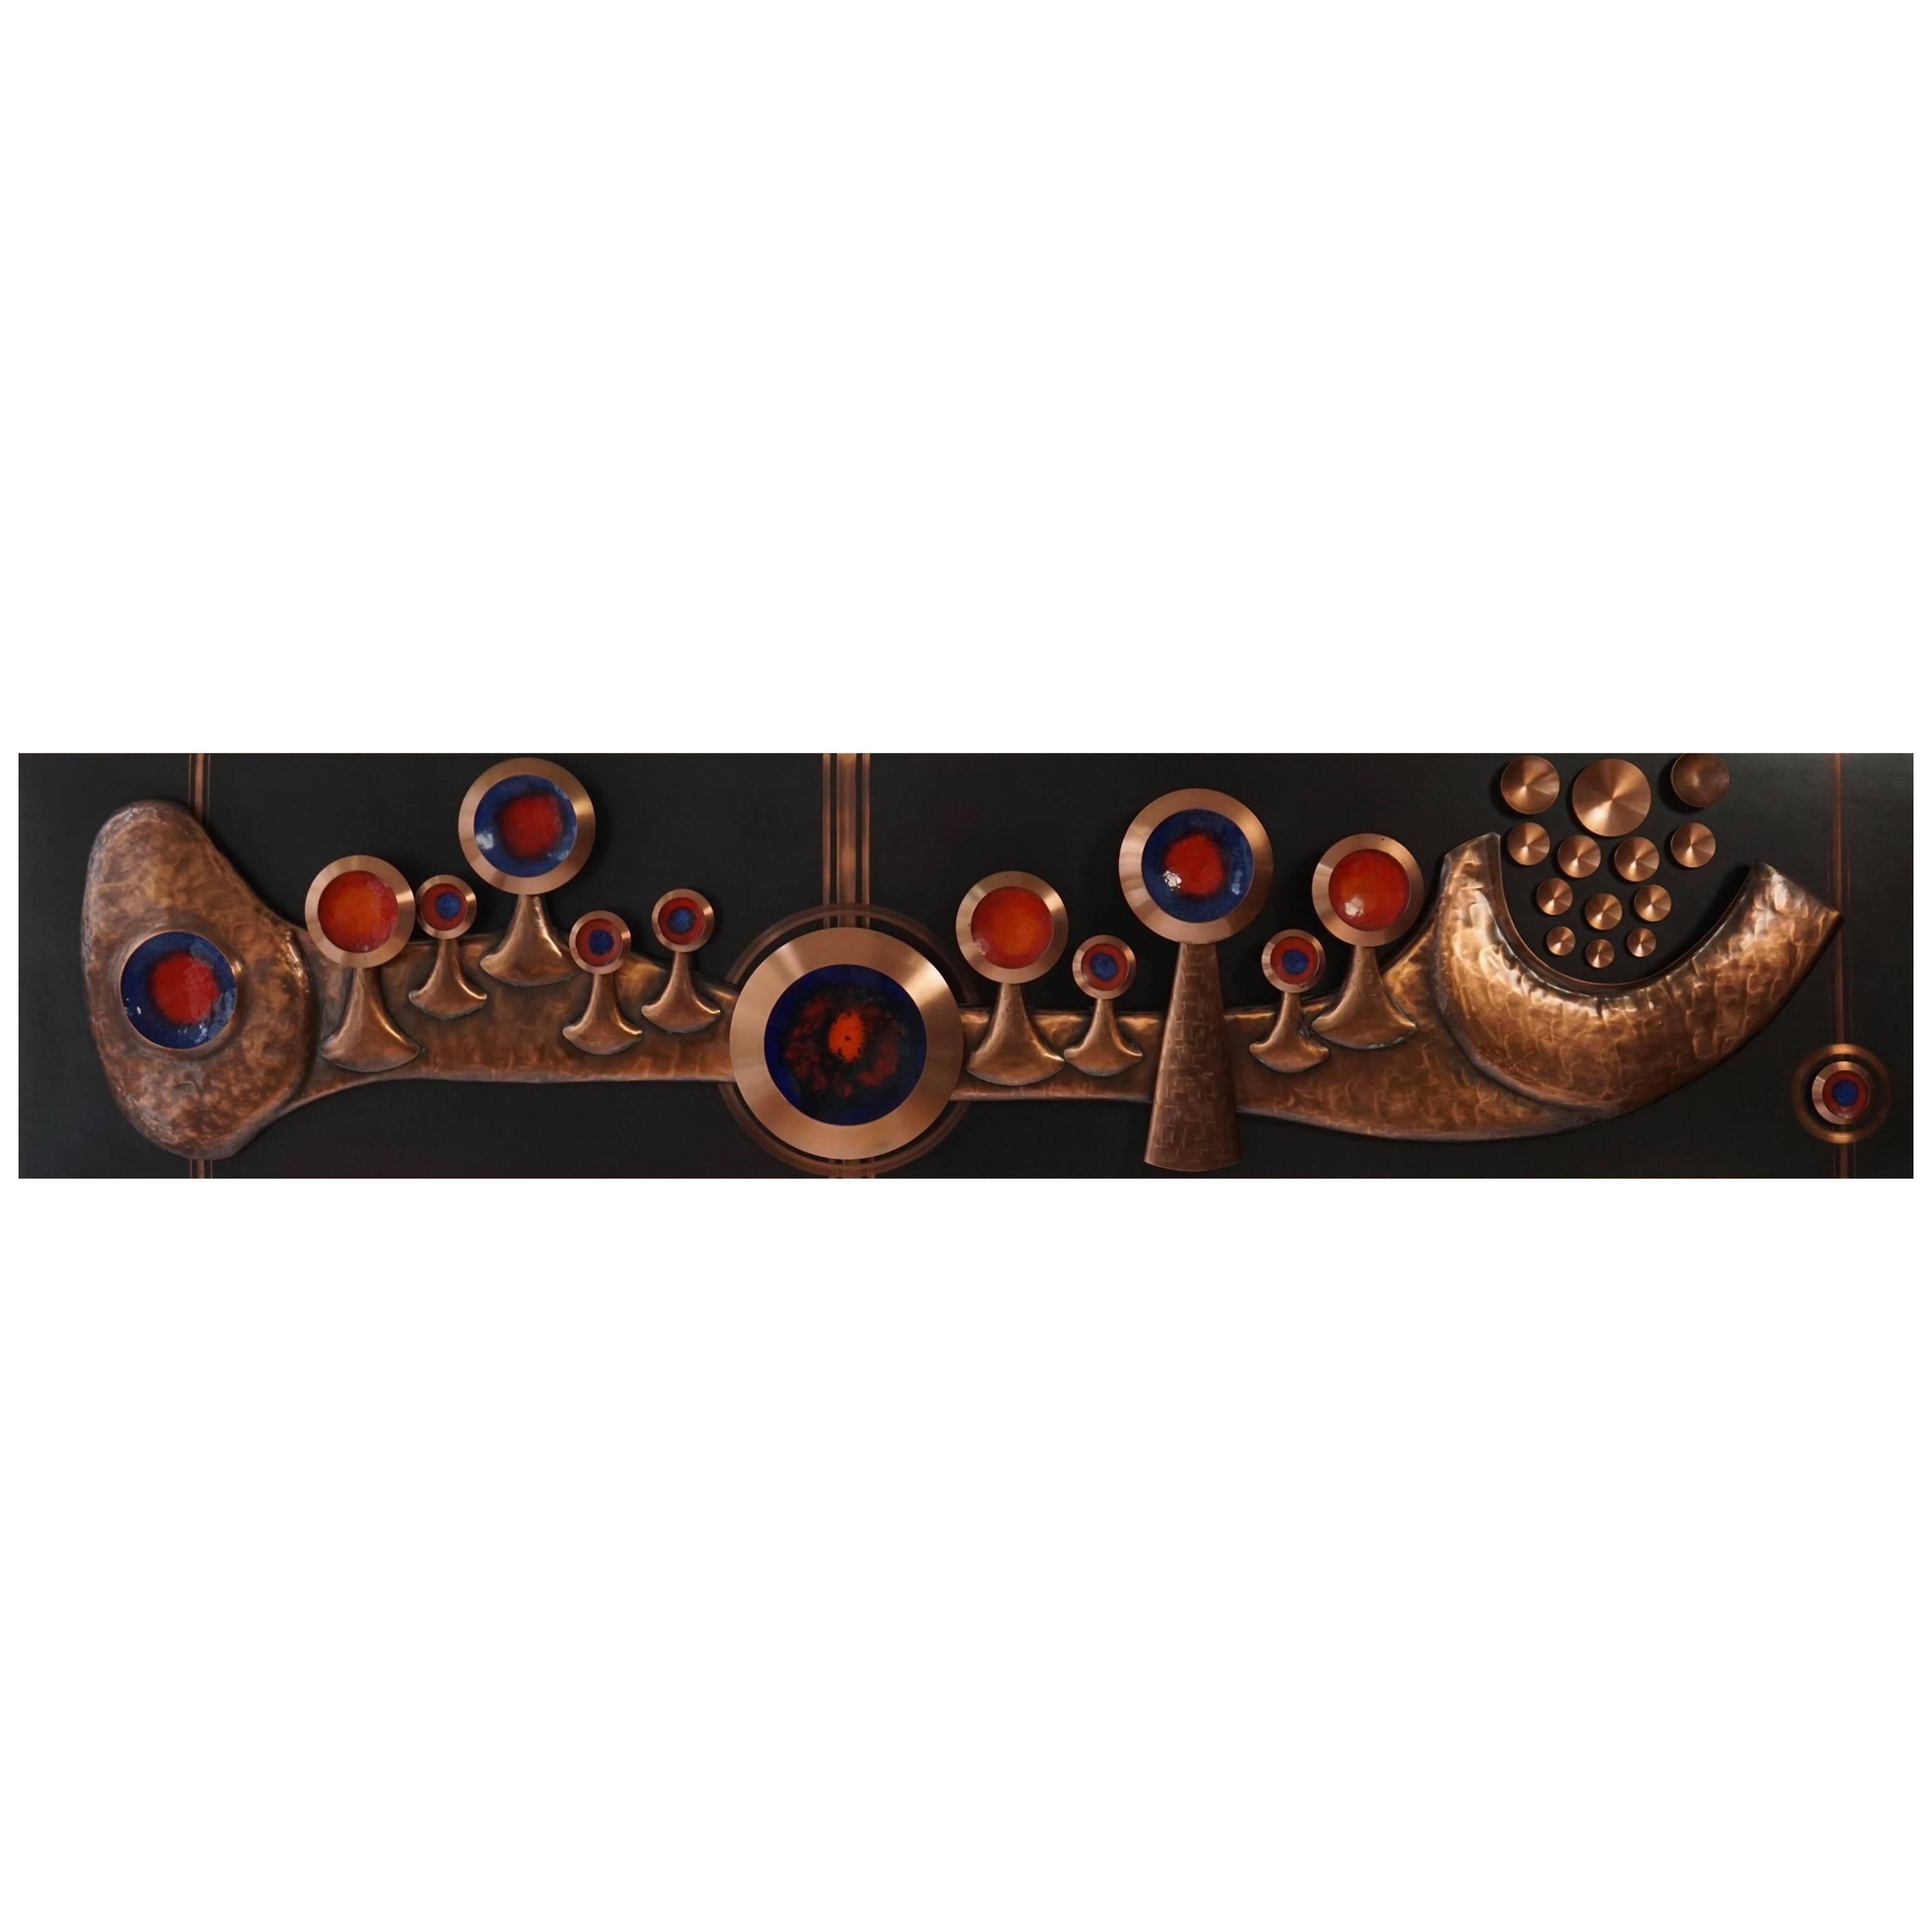 Copper Wall-Mounted Sculpture